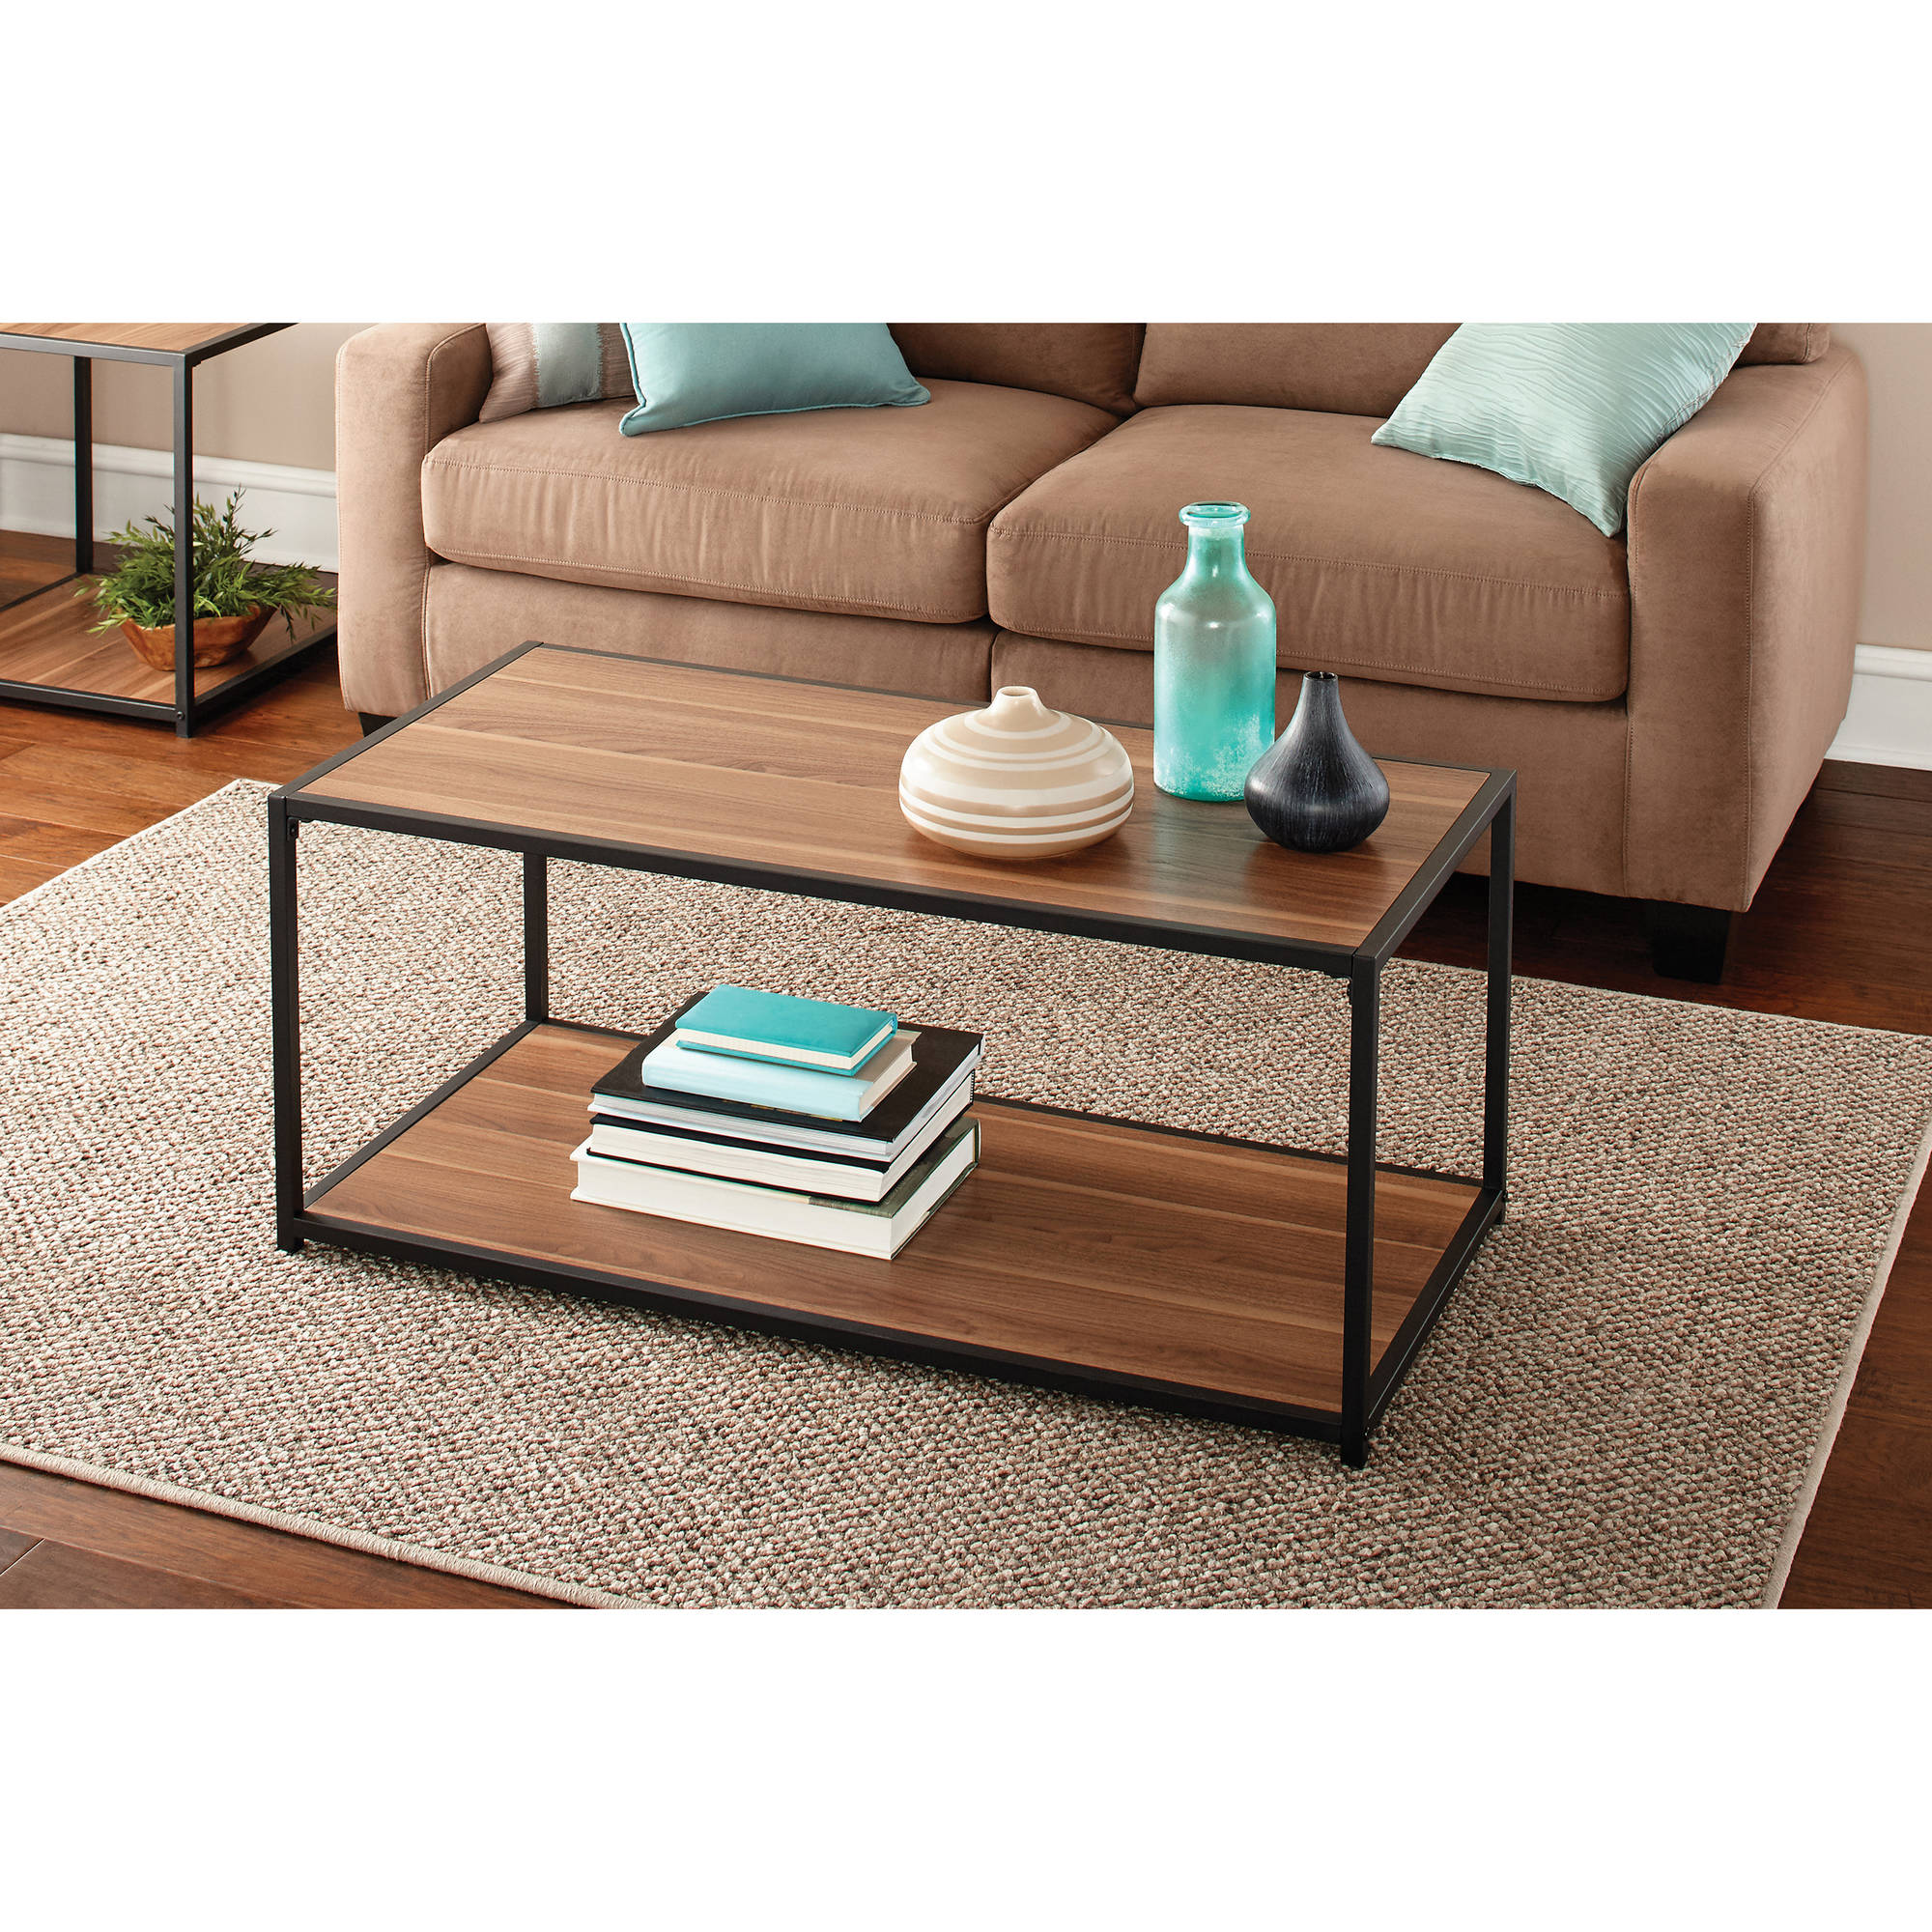 furniture coffee table for modern living room decoration with wicker basket storage tables square narrow mainstays instructions low height accent battery pack lamp outdoor serving